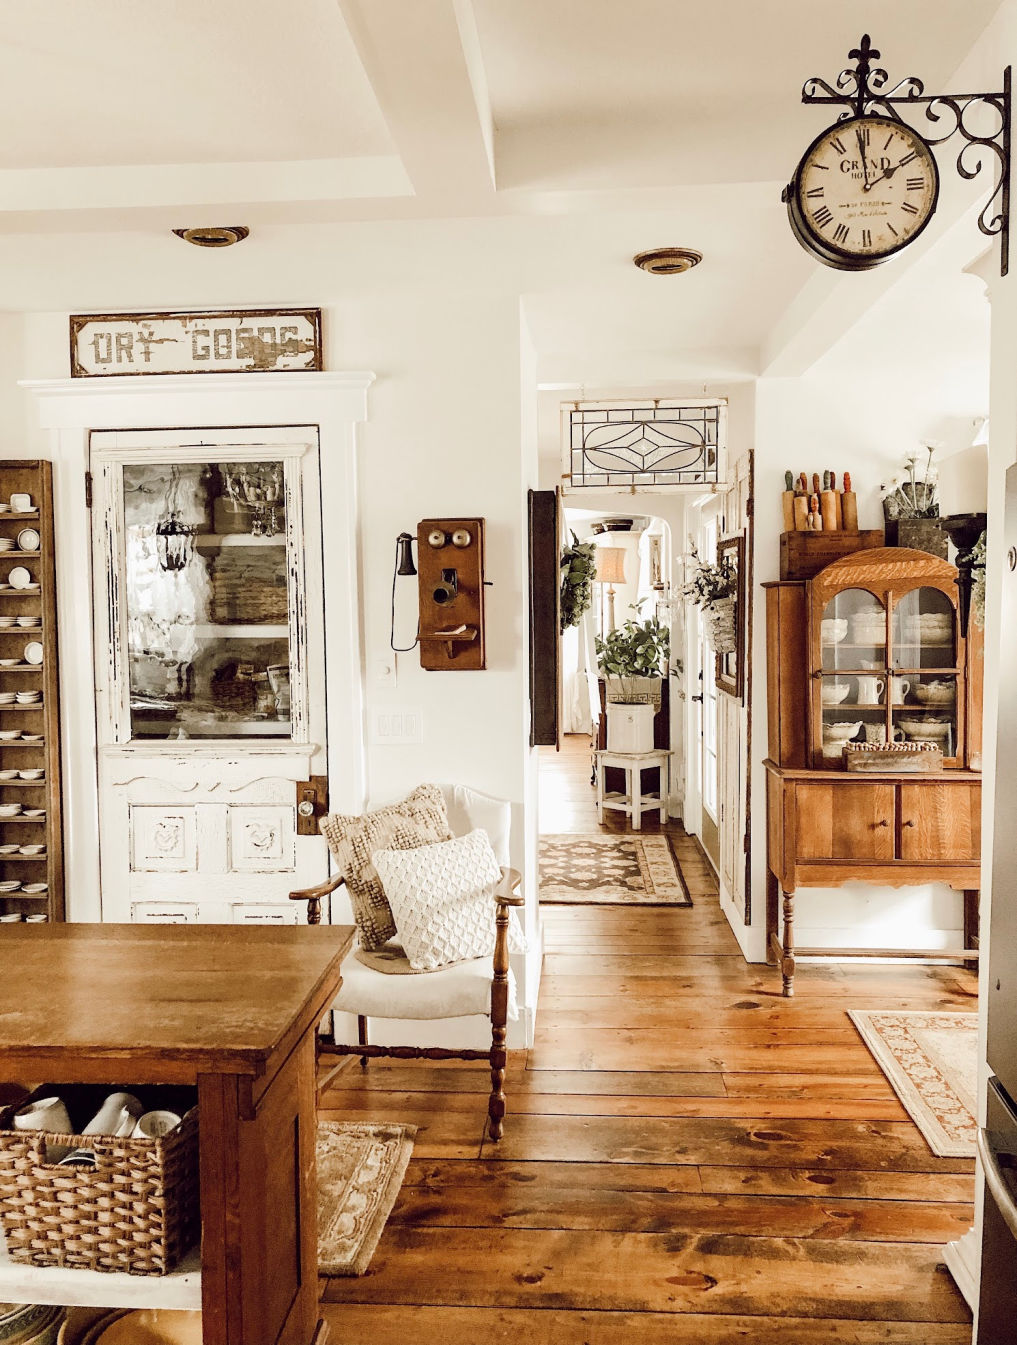 Love this farmhouse kitchen with an antique pantry door #farmhouse #farmhousekitchen #vintagekitchen #vintagedecor #neutraldecor #farmhousedecor